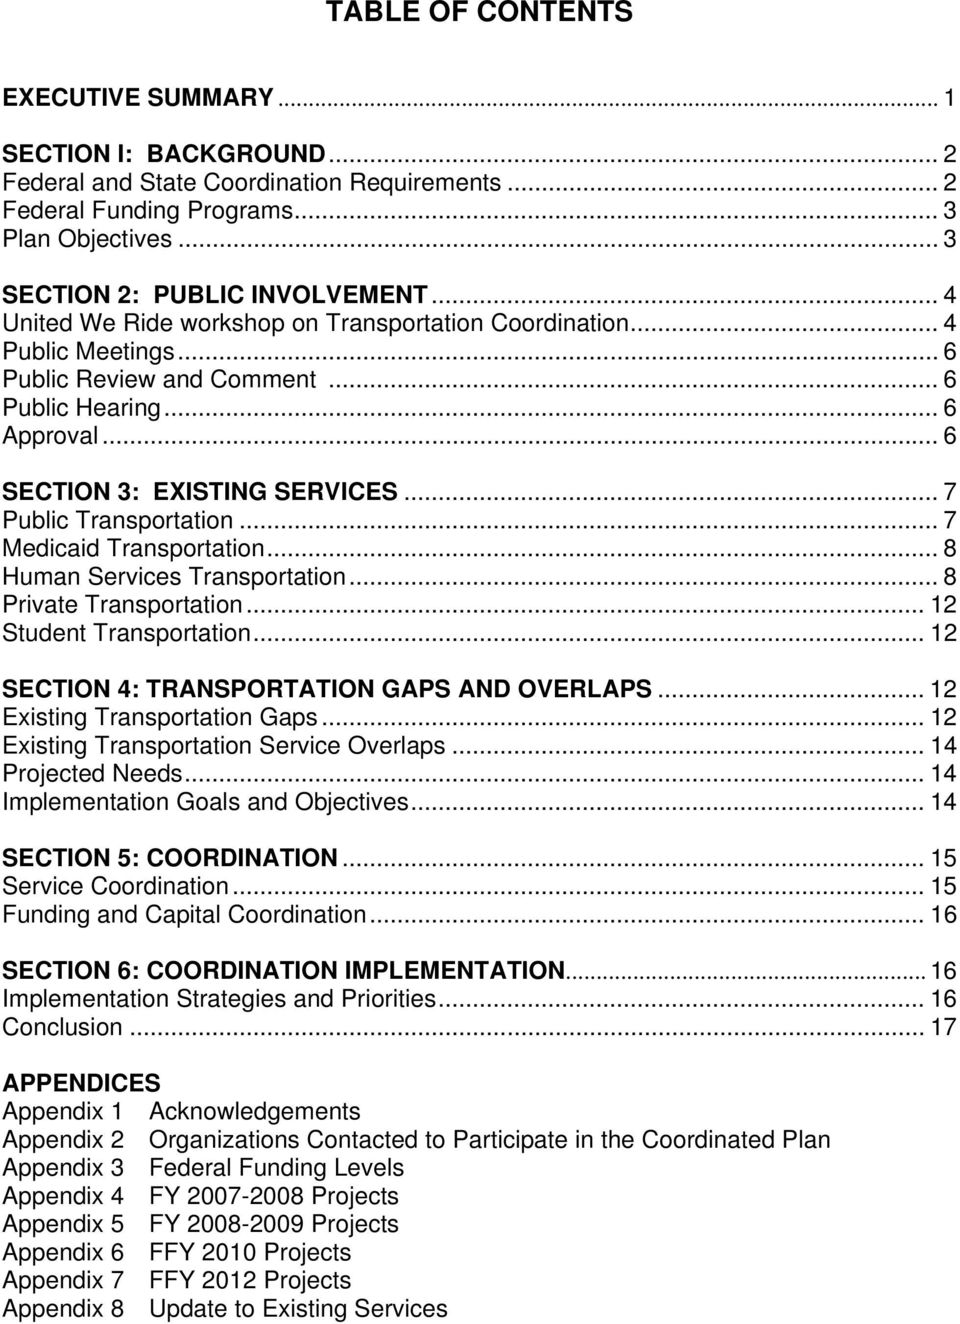 .. 7 Public Transportation... 7 Medicaid Transportation... 8 Human Services Transportation... 8 Private Transportation... 12 Student Transportation... 12 SECTION 4: TRANSPORTATION GAPS AND OVERLAPS.